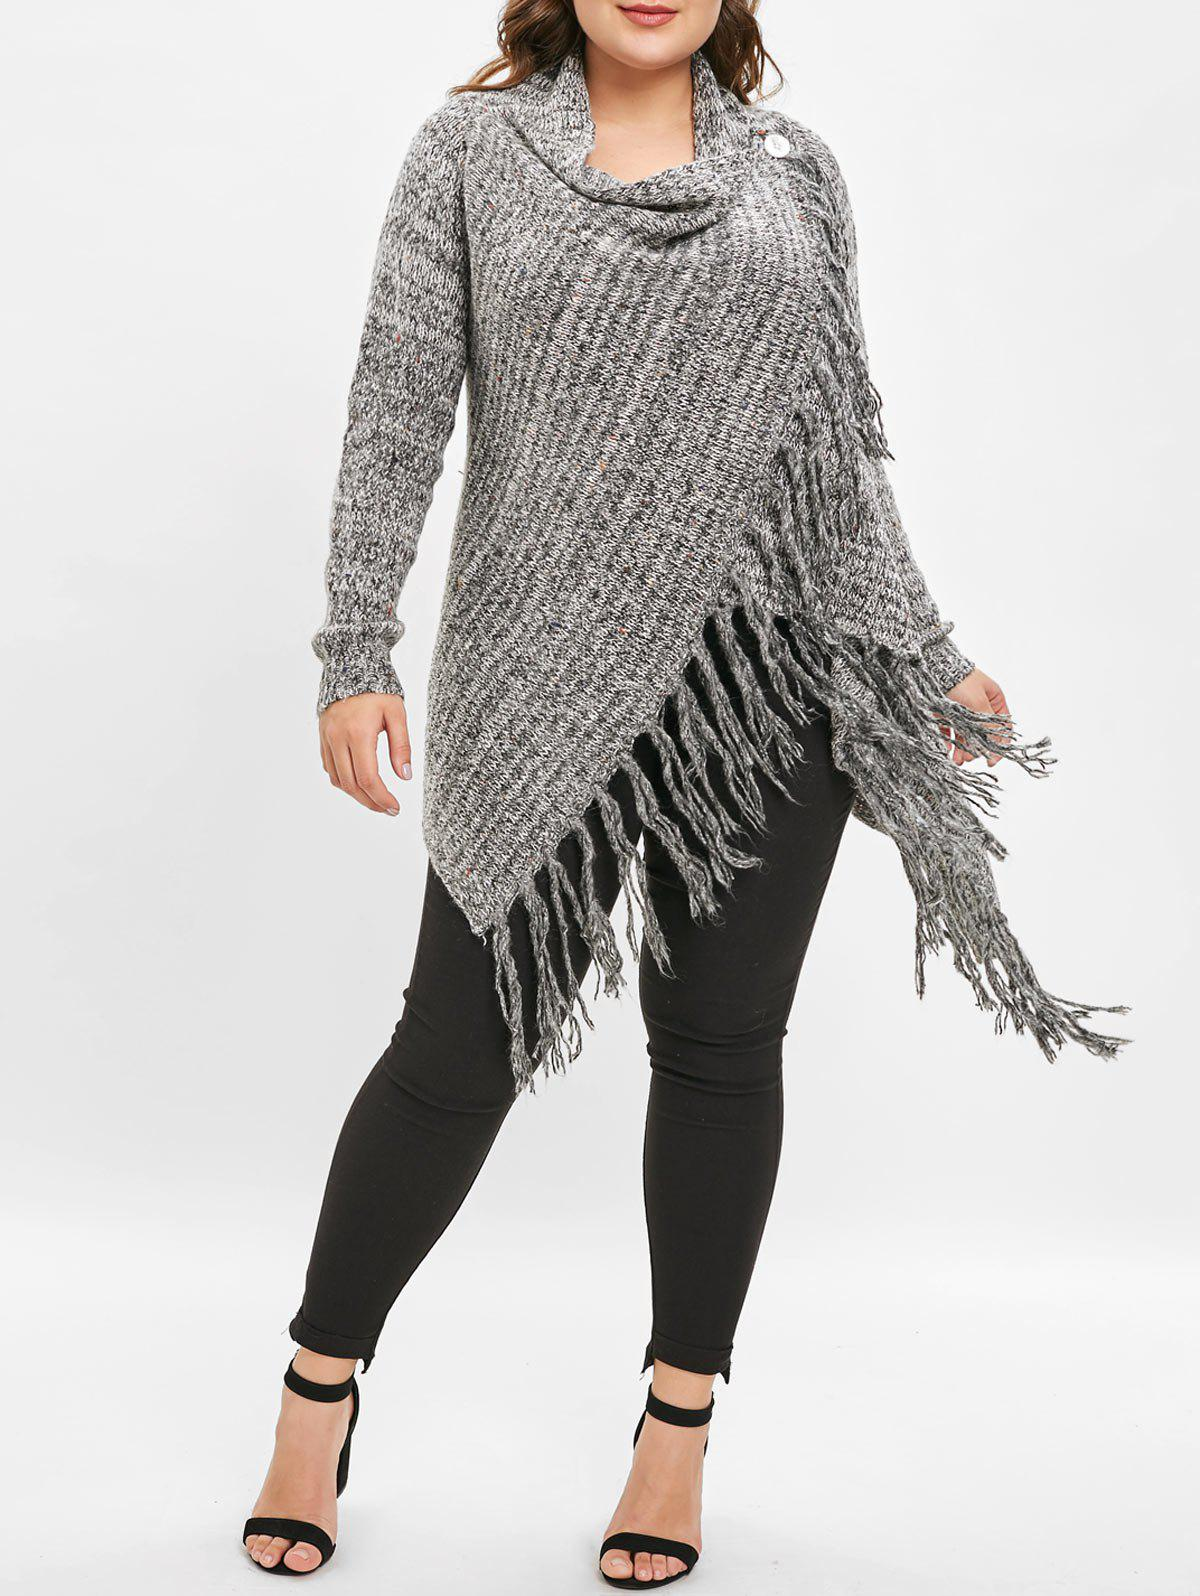 Plus Size Cowl Neck Tassel Longline Sweater - DARK GRAY 1X